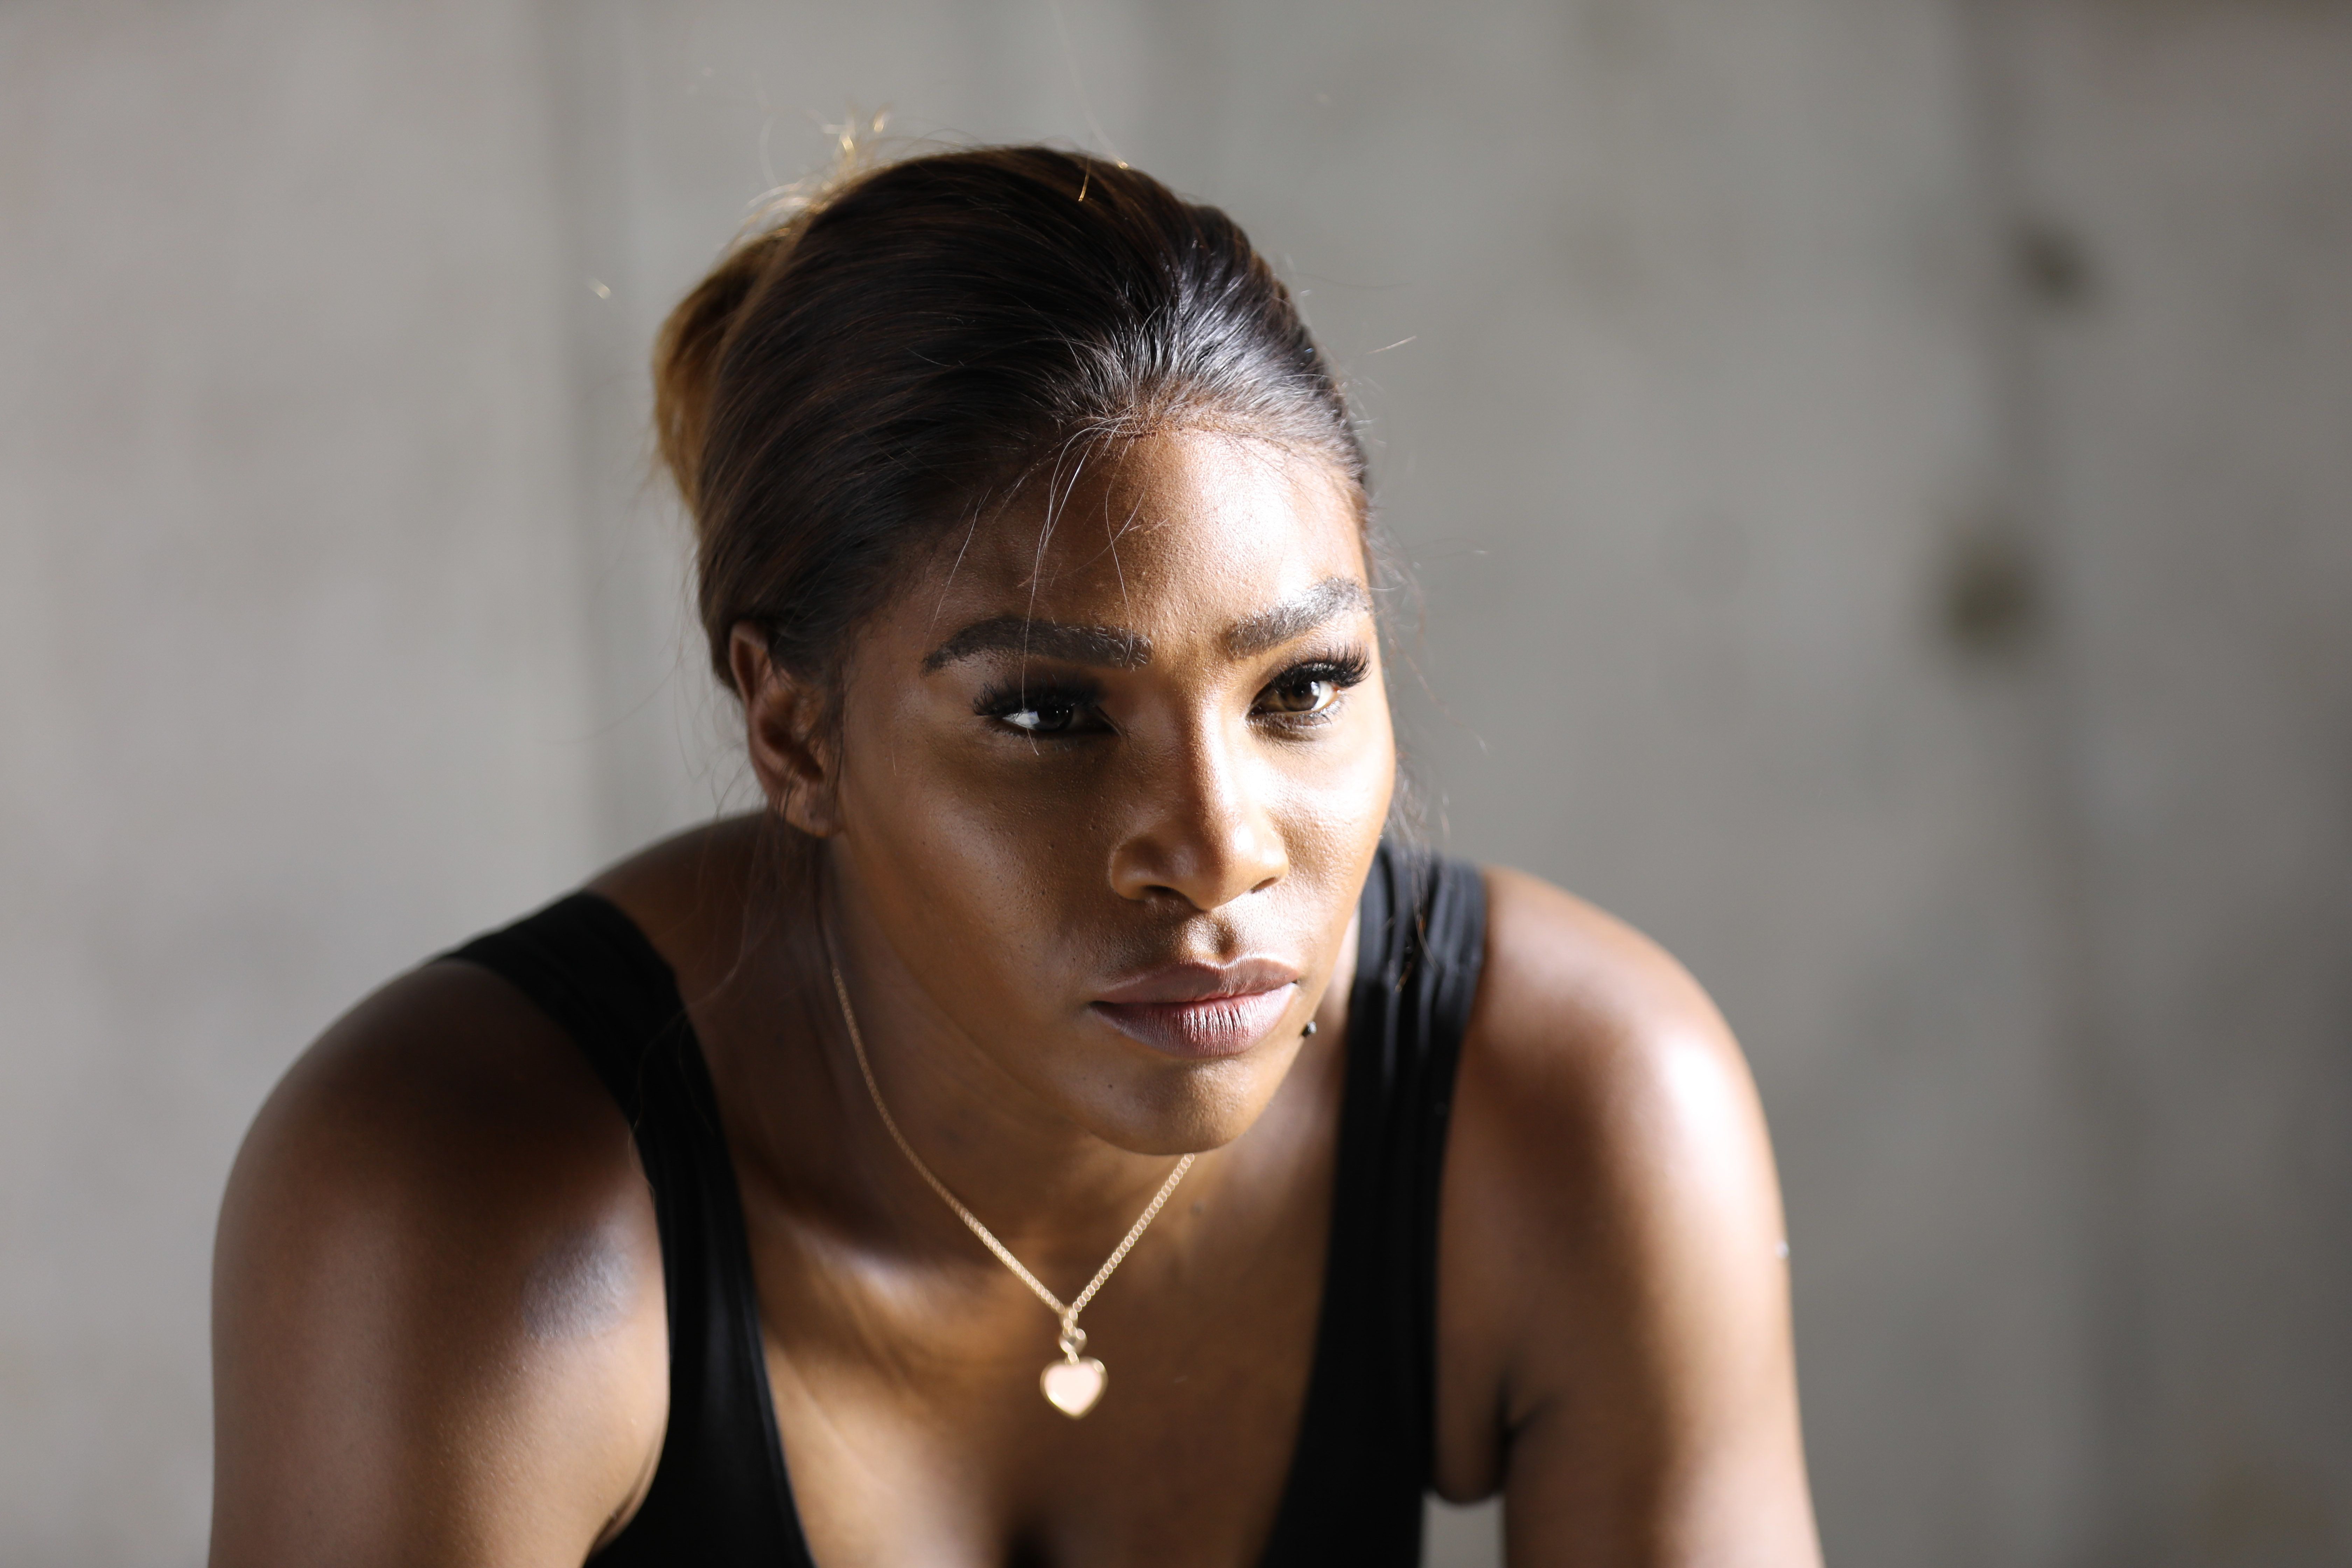 Serena Williams is this year's ambassador for the Allstate Foundation Purple Purse, which seeks to end domestic violence through financial empowerment.